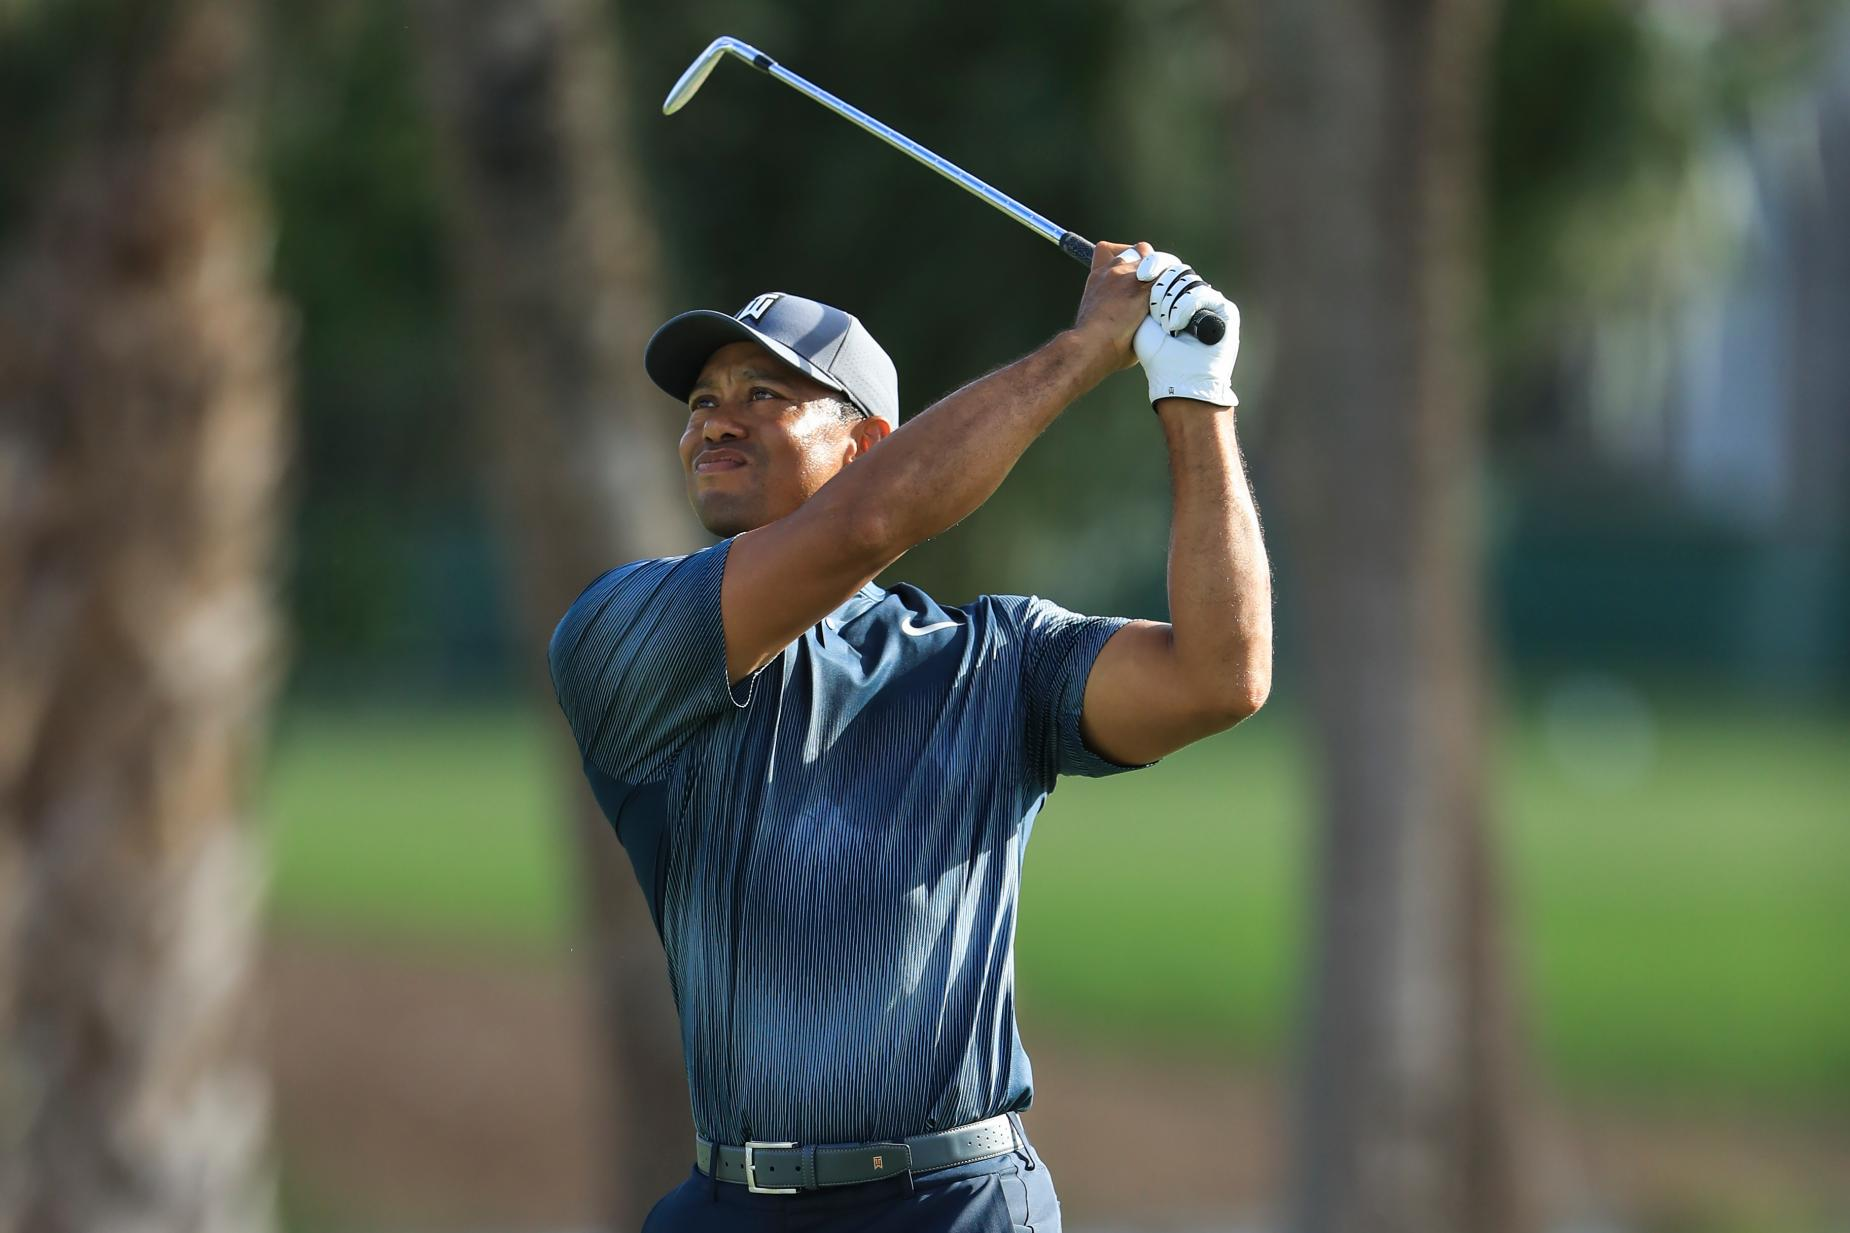 180221-tiger-woods-swing.jpg